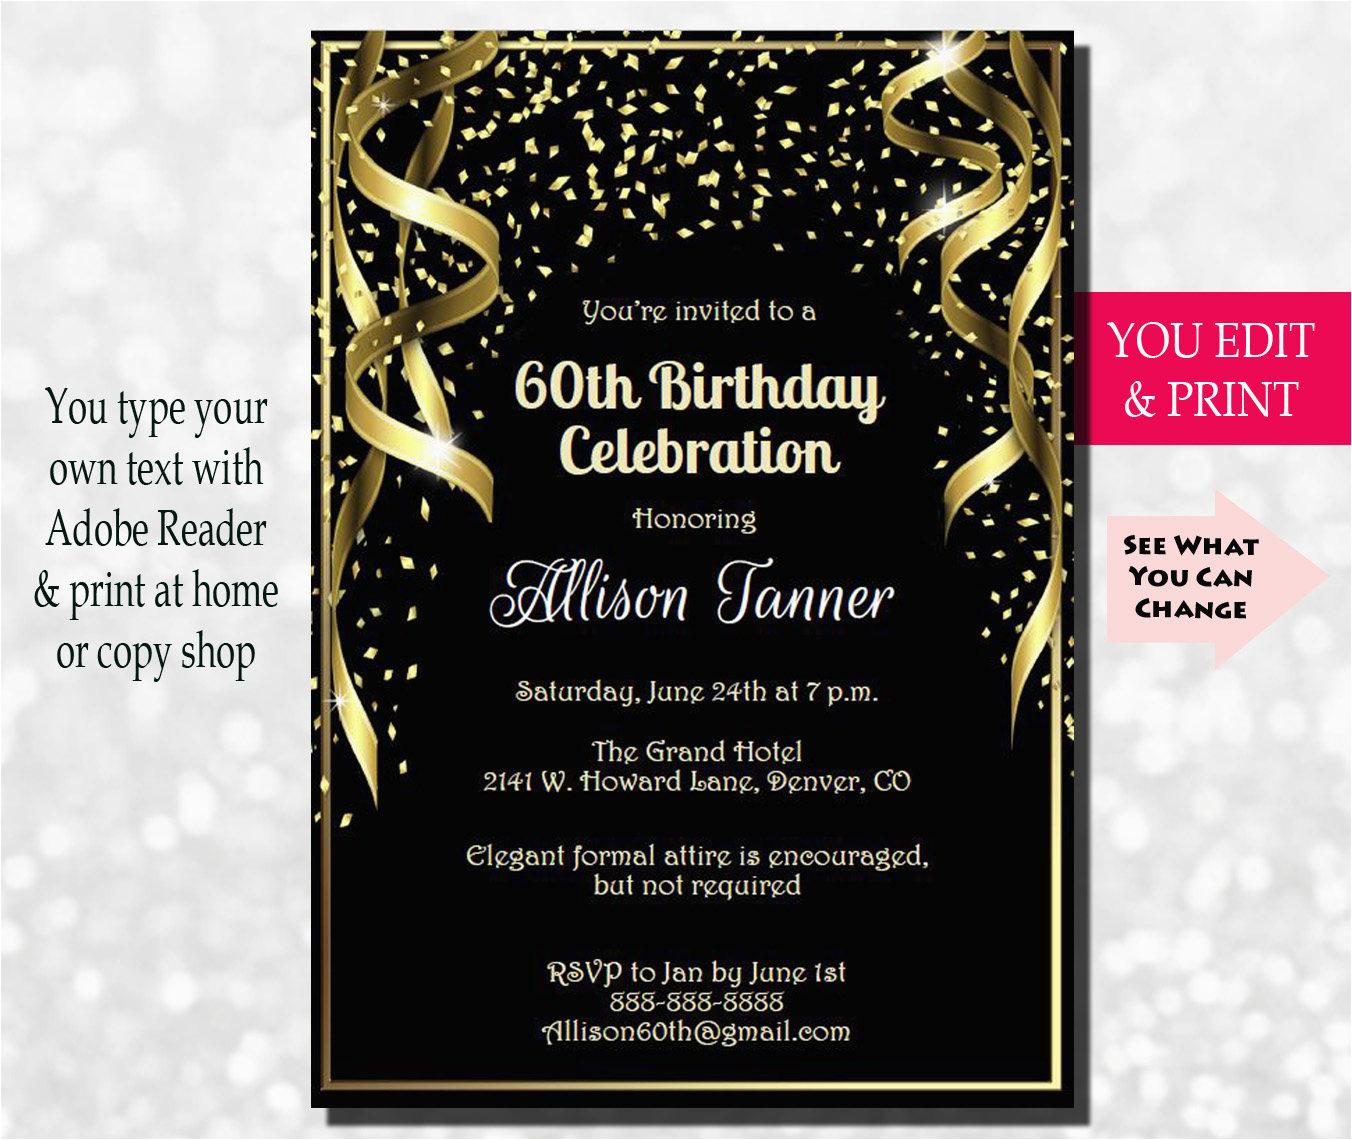 Invitation Wording For 60th Birthday Party